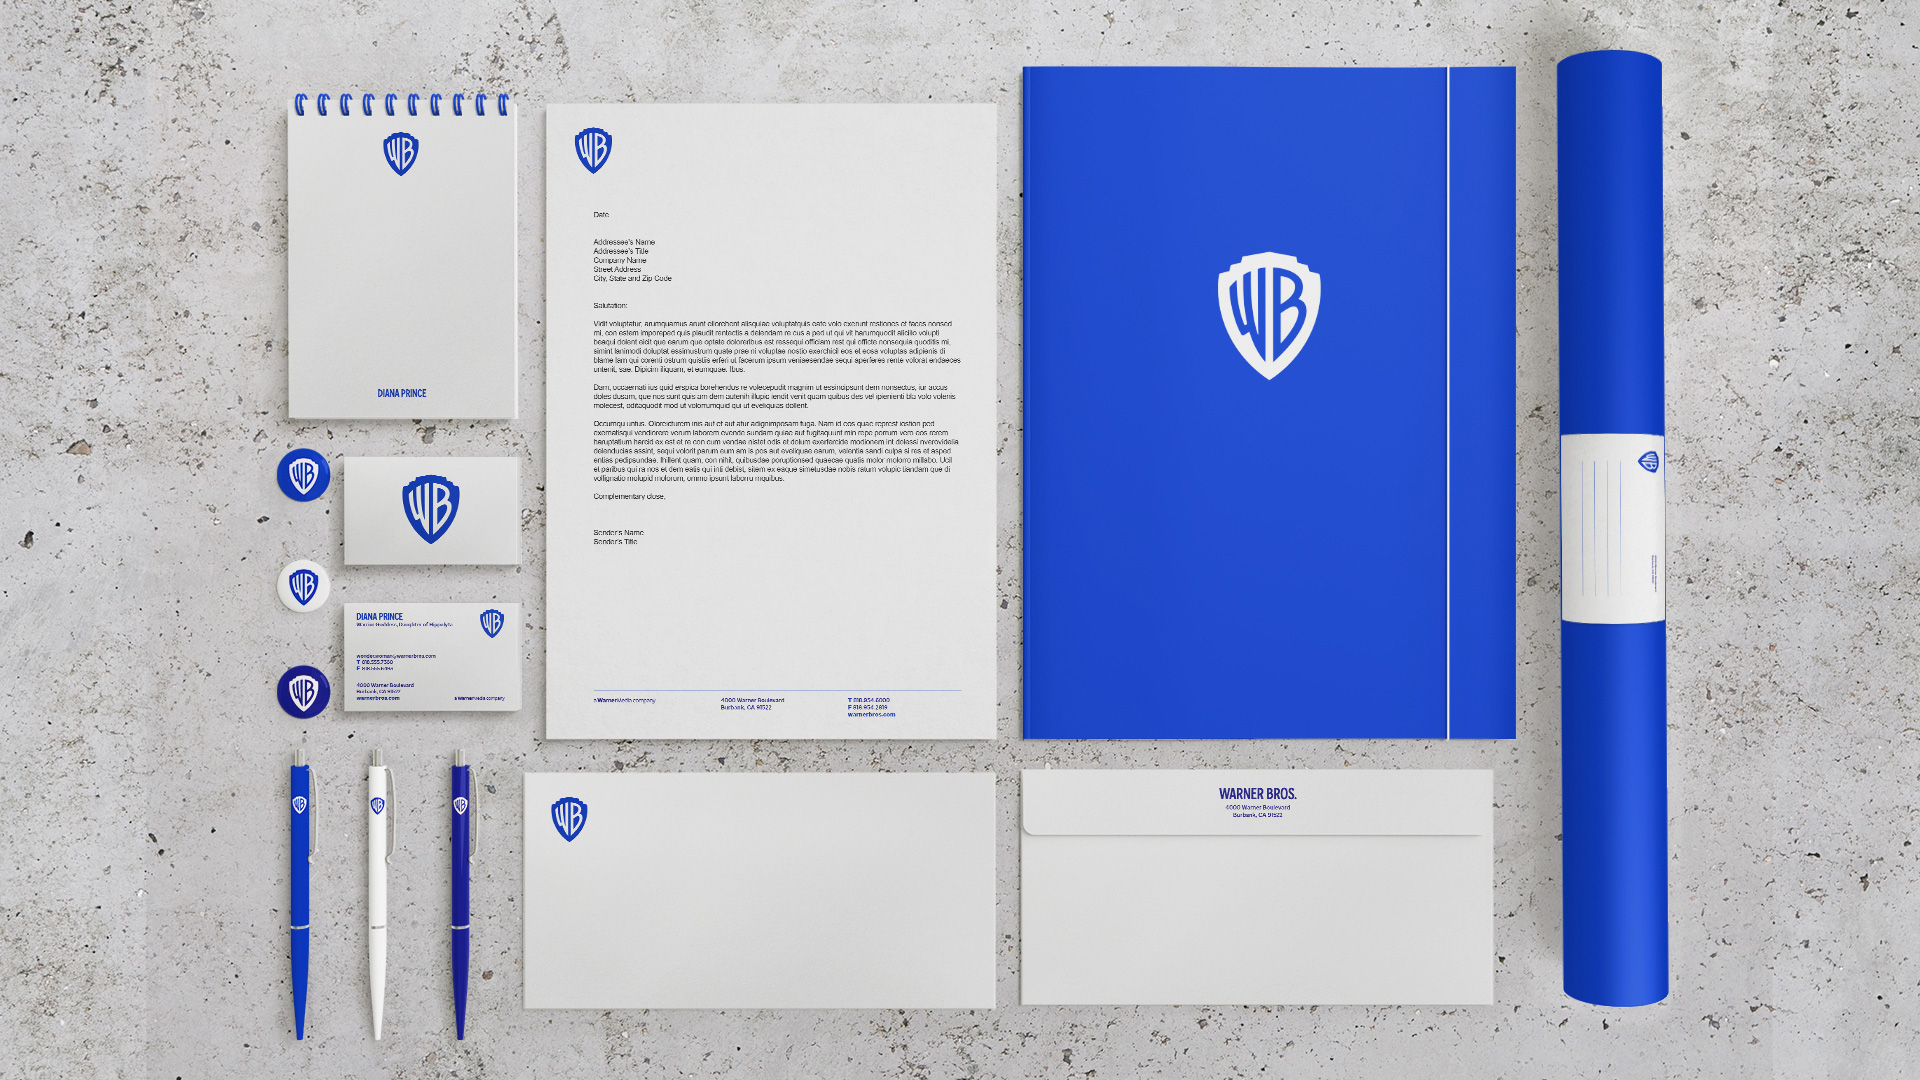 Stationery. Credit: Warner Bros.